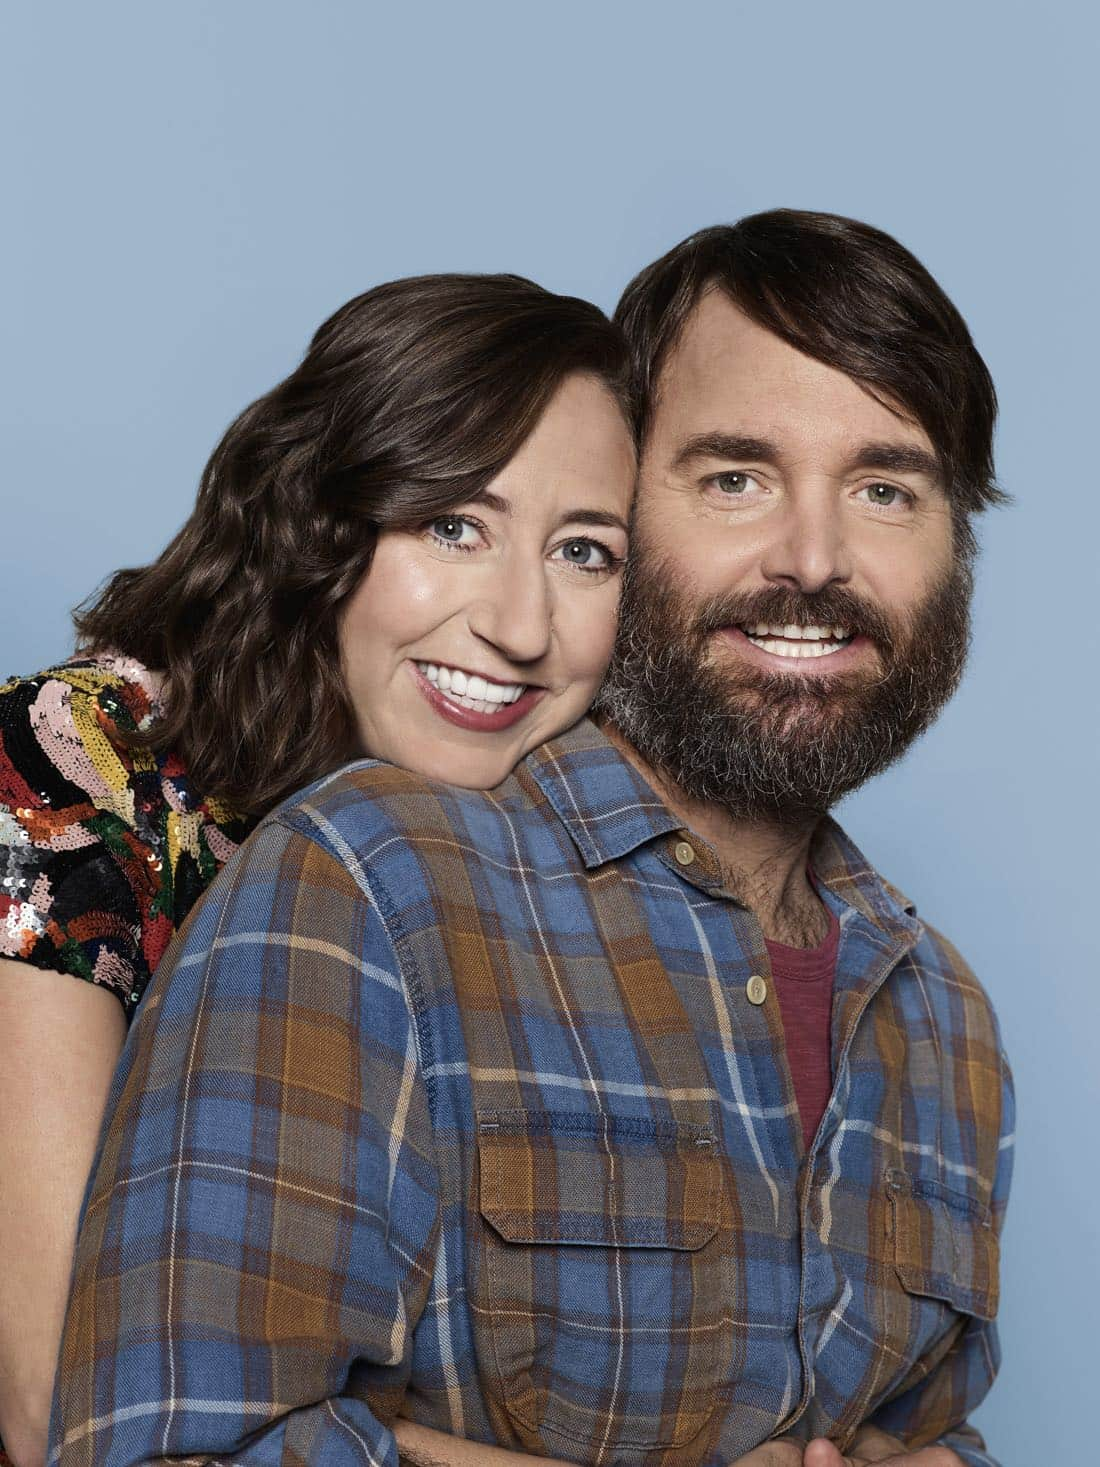 THE LAST MAN ON EARTH: L-R: Kristen Schaal and Will Forte in the LAST MAN ON EARTH season four premiere Sunday, Oct. 1 (9:30-10:00 PM ET/PT) on FOX. ©2017 Fox Broadcasting Company. Cr: Pamela Littky/FOX